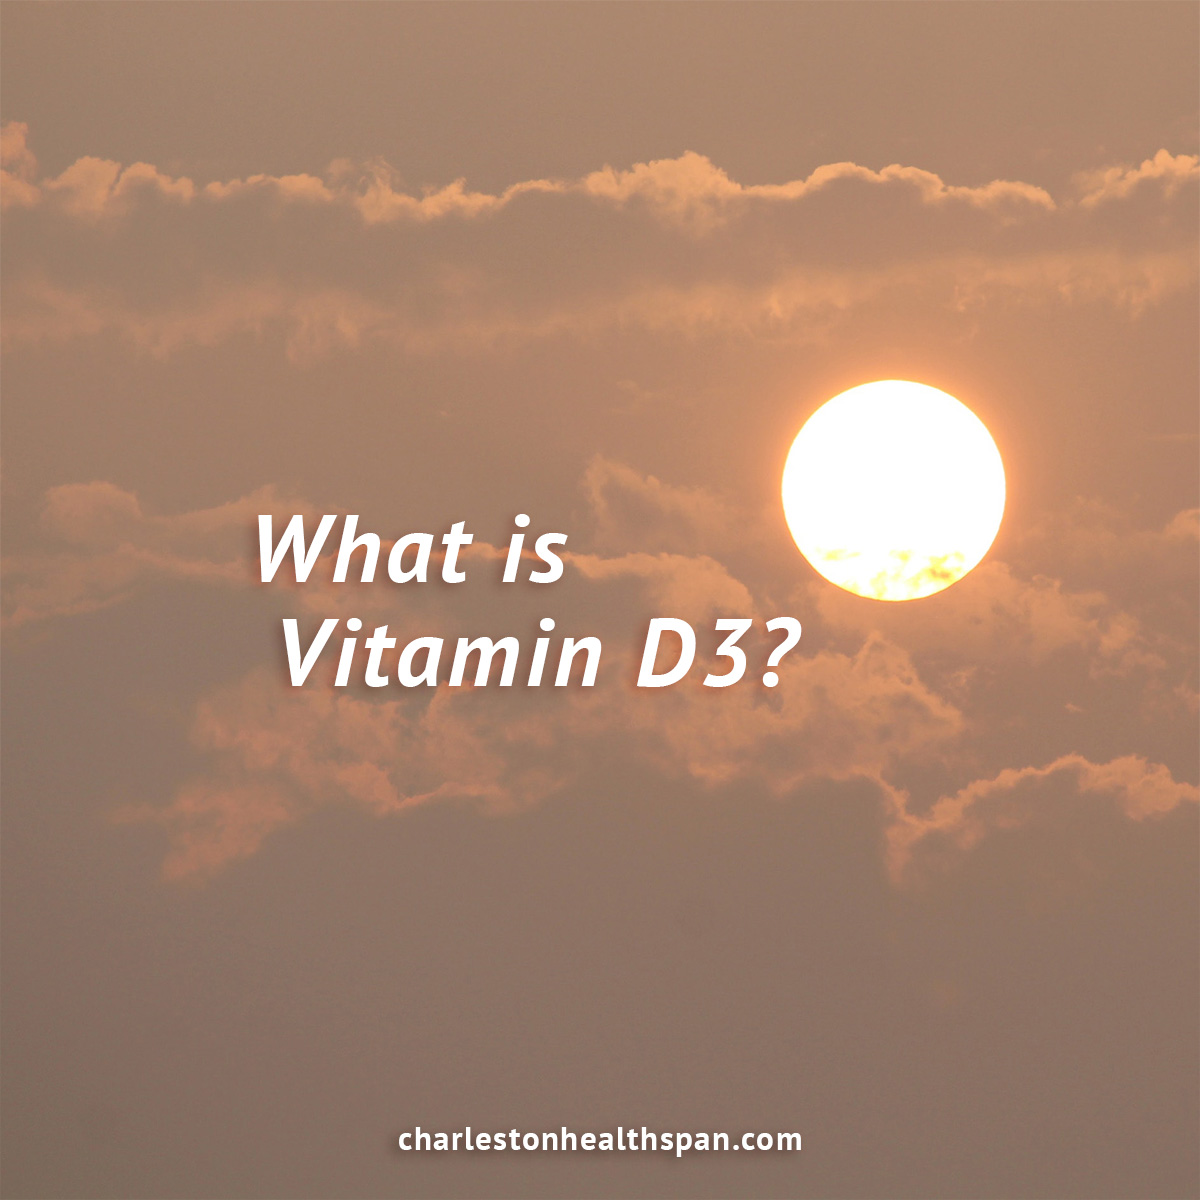 vitamin d3 is a hormone produced from the sun